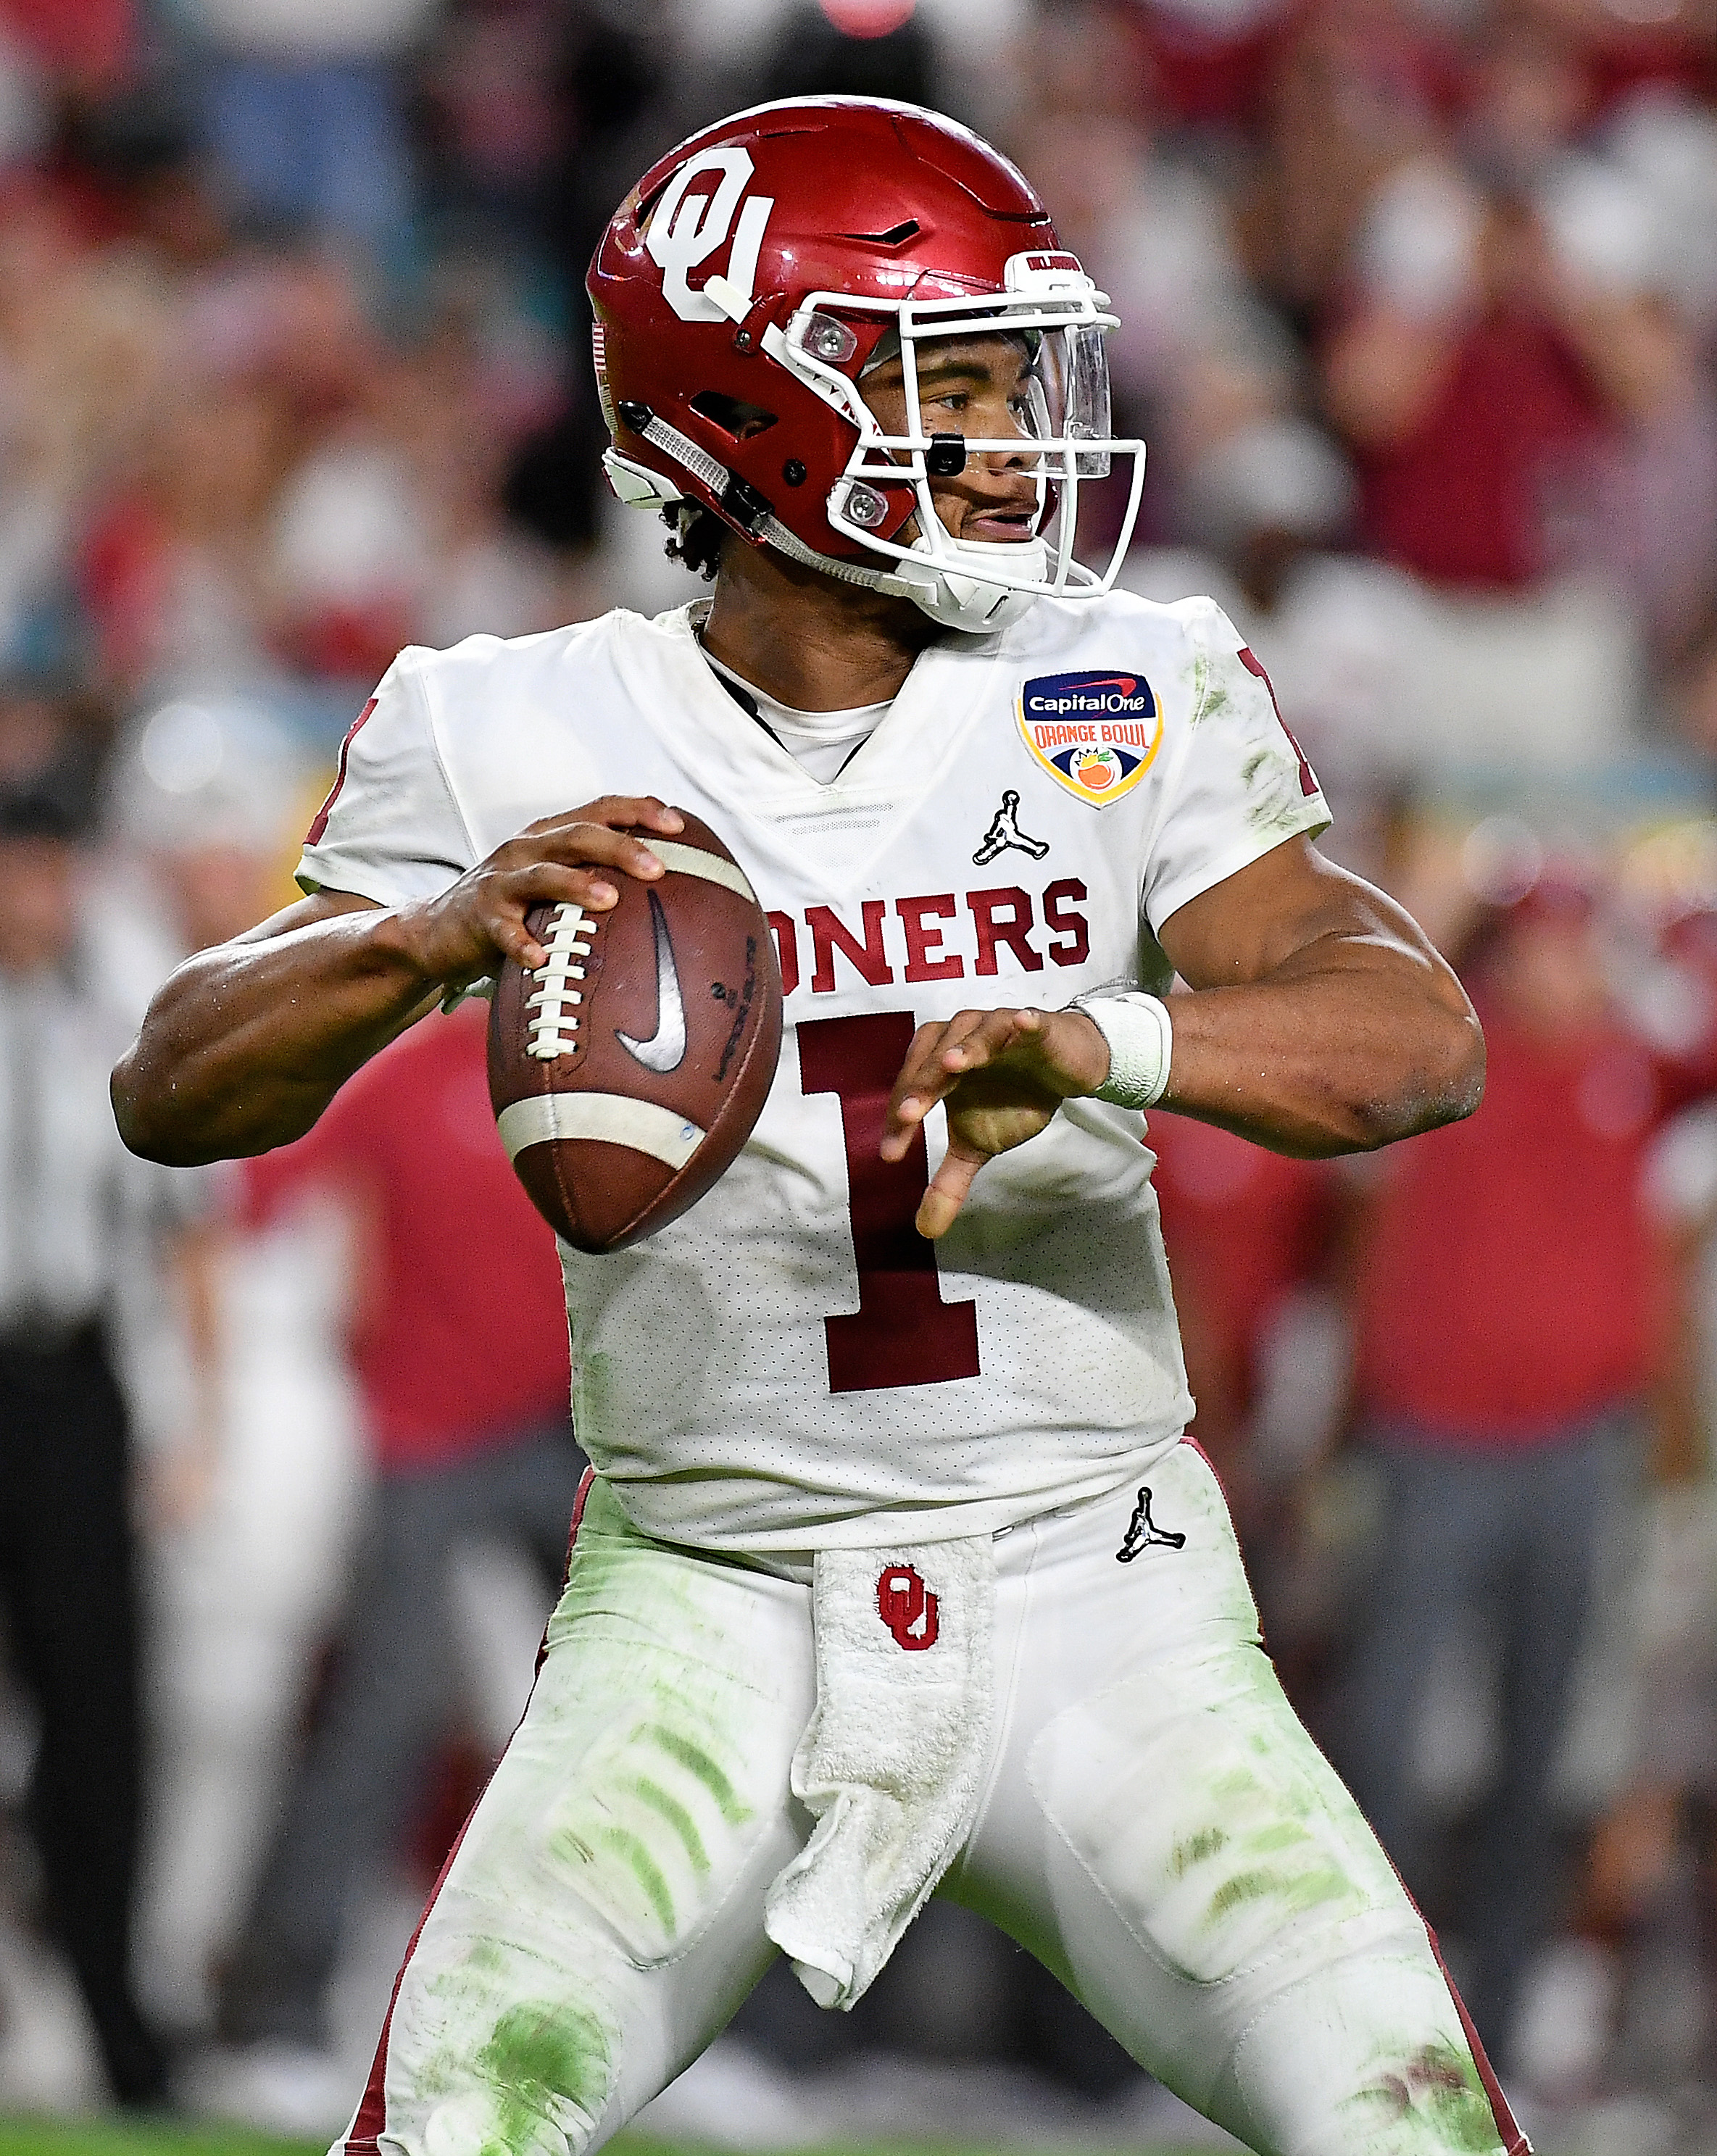 2019 NFL Draft: Mel Kiper thinks the Raiders could be in play for Kyler Murray